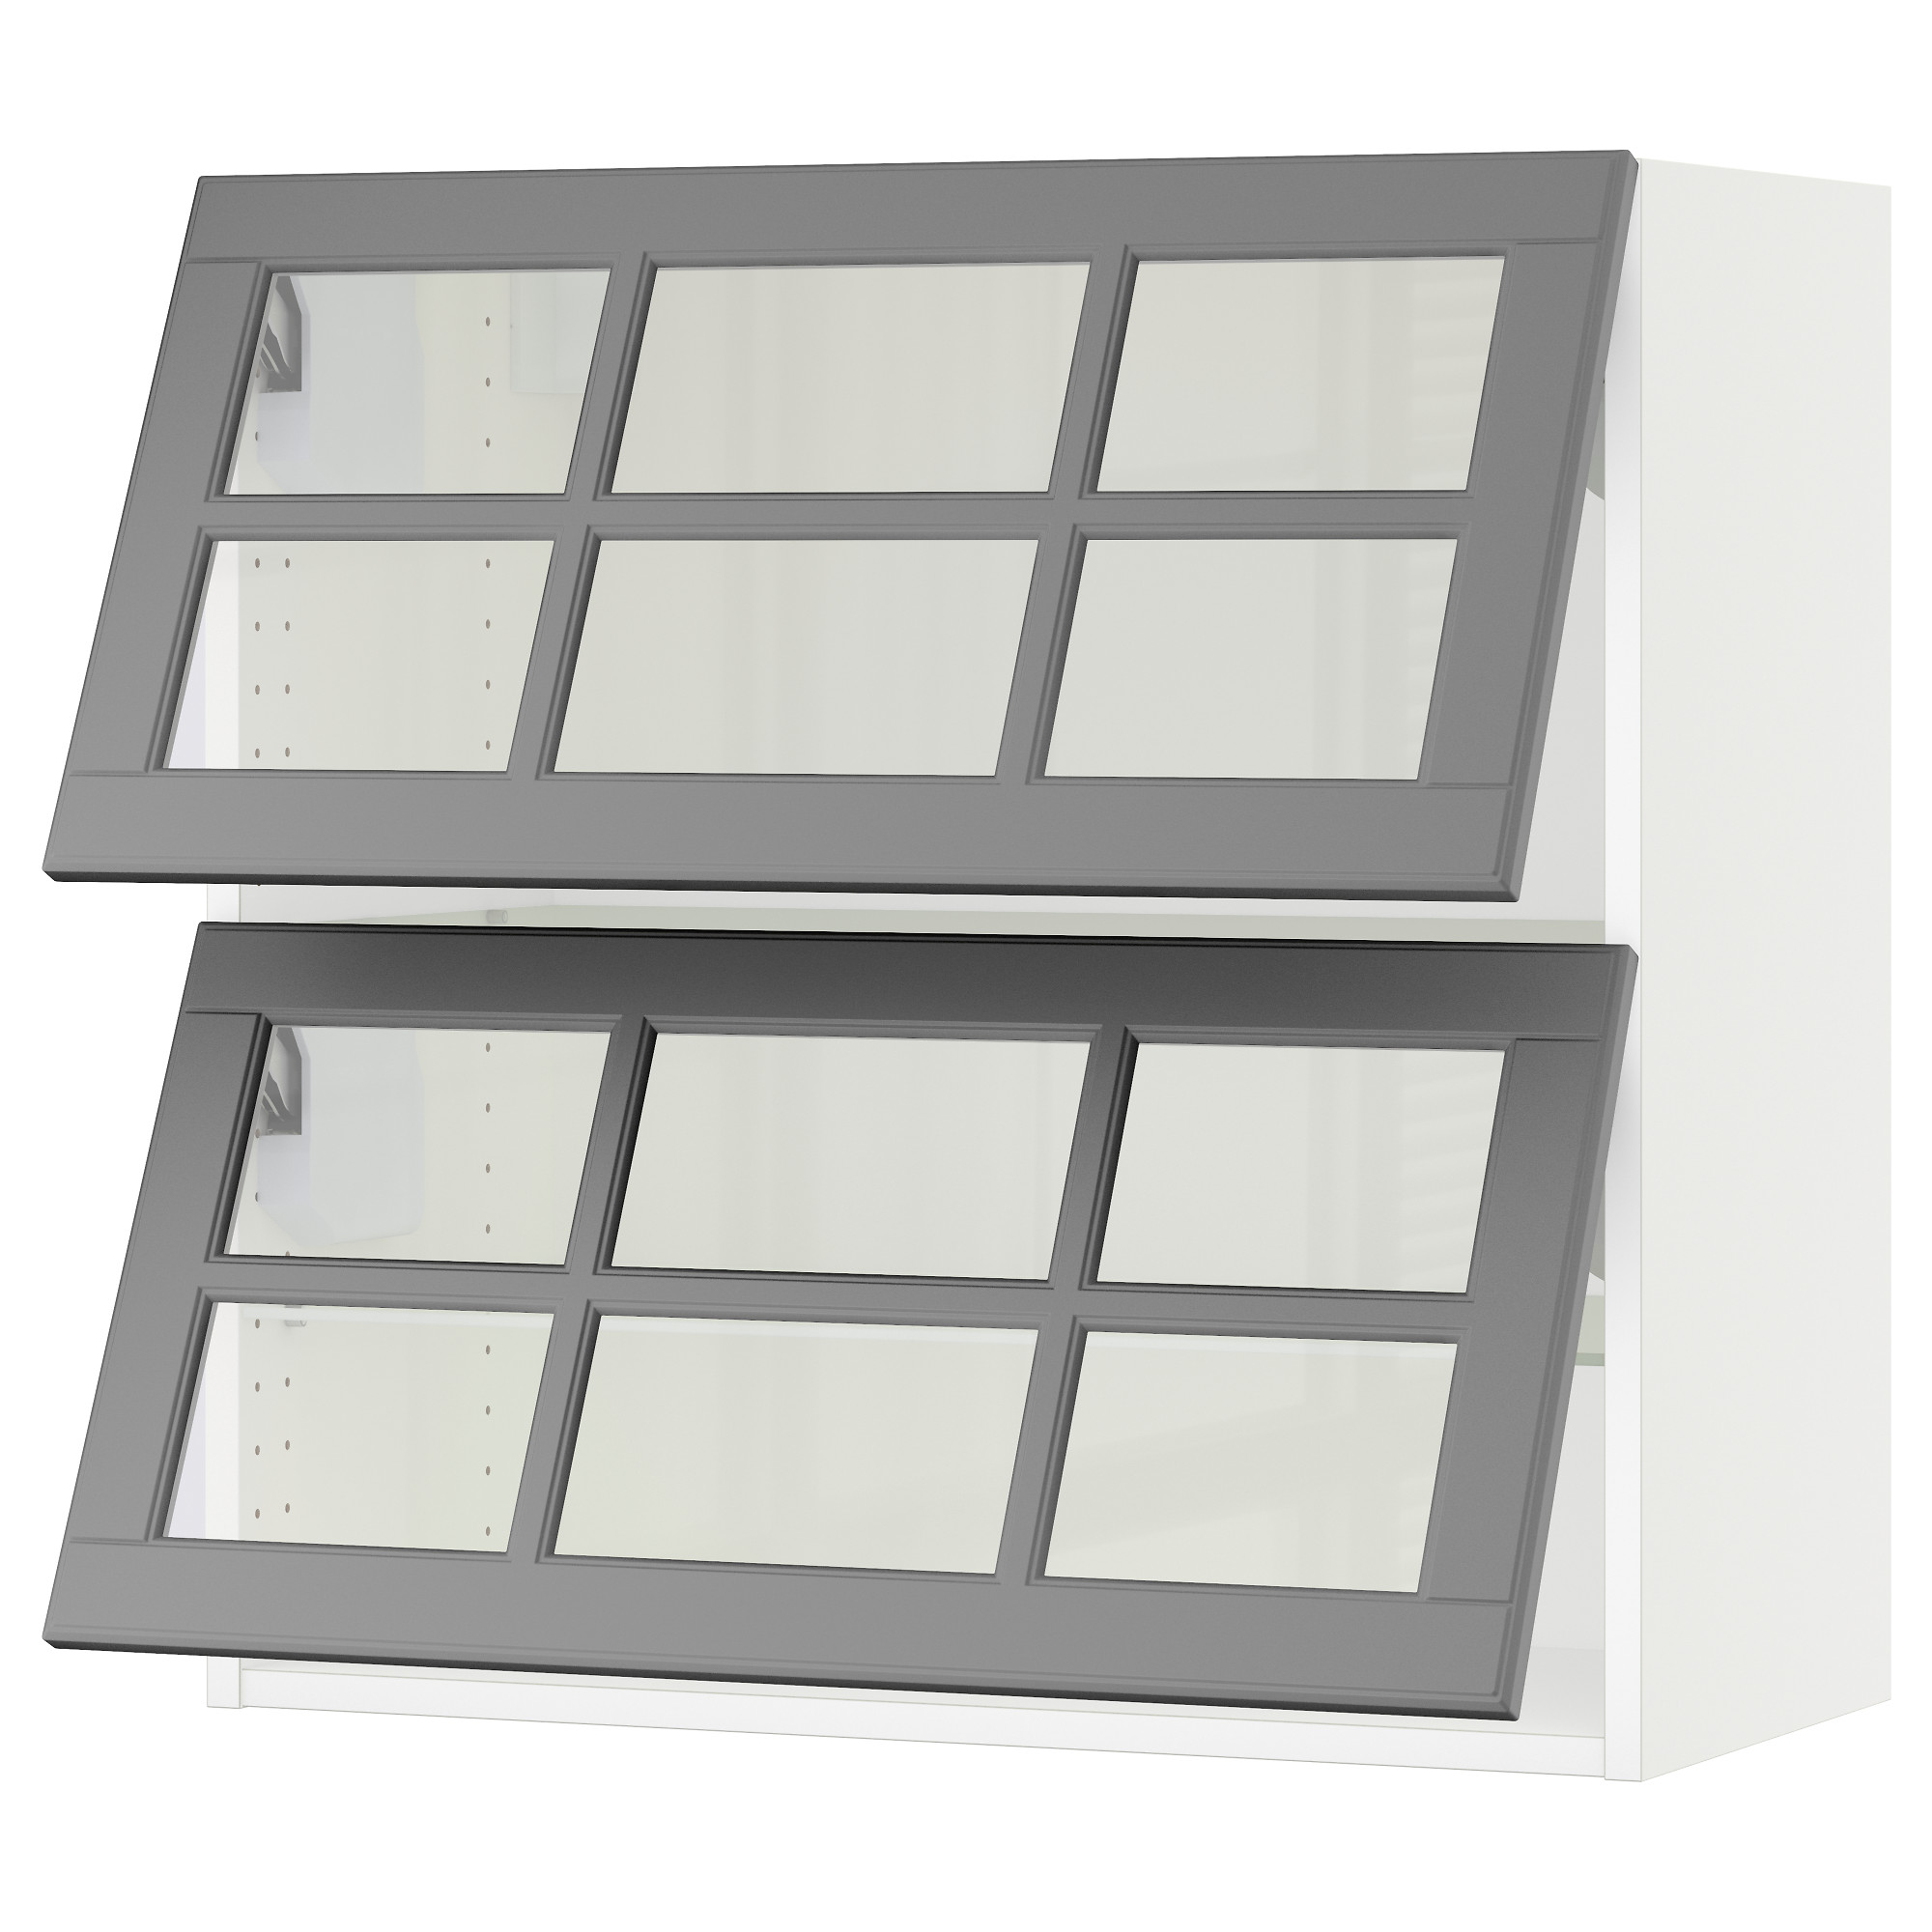 wall cabinets sektion horizontal wall cabinet 2glass door white bodbyn gray width 30